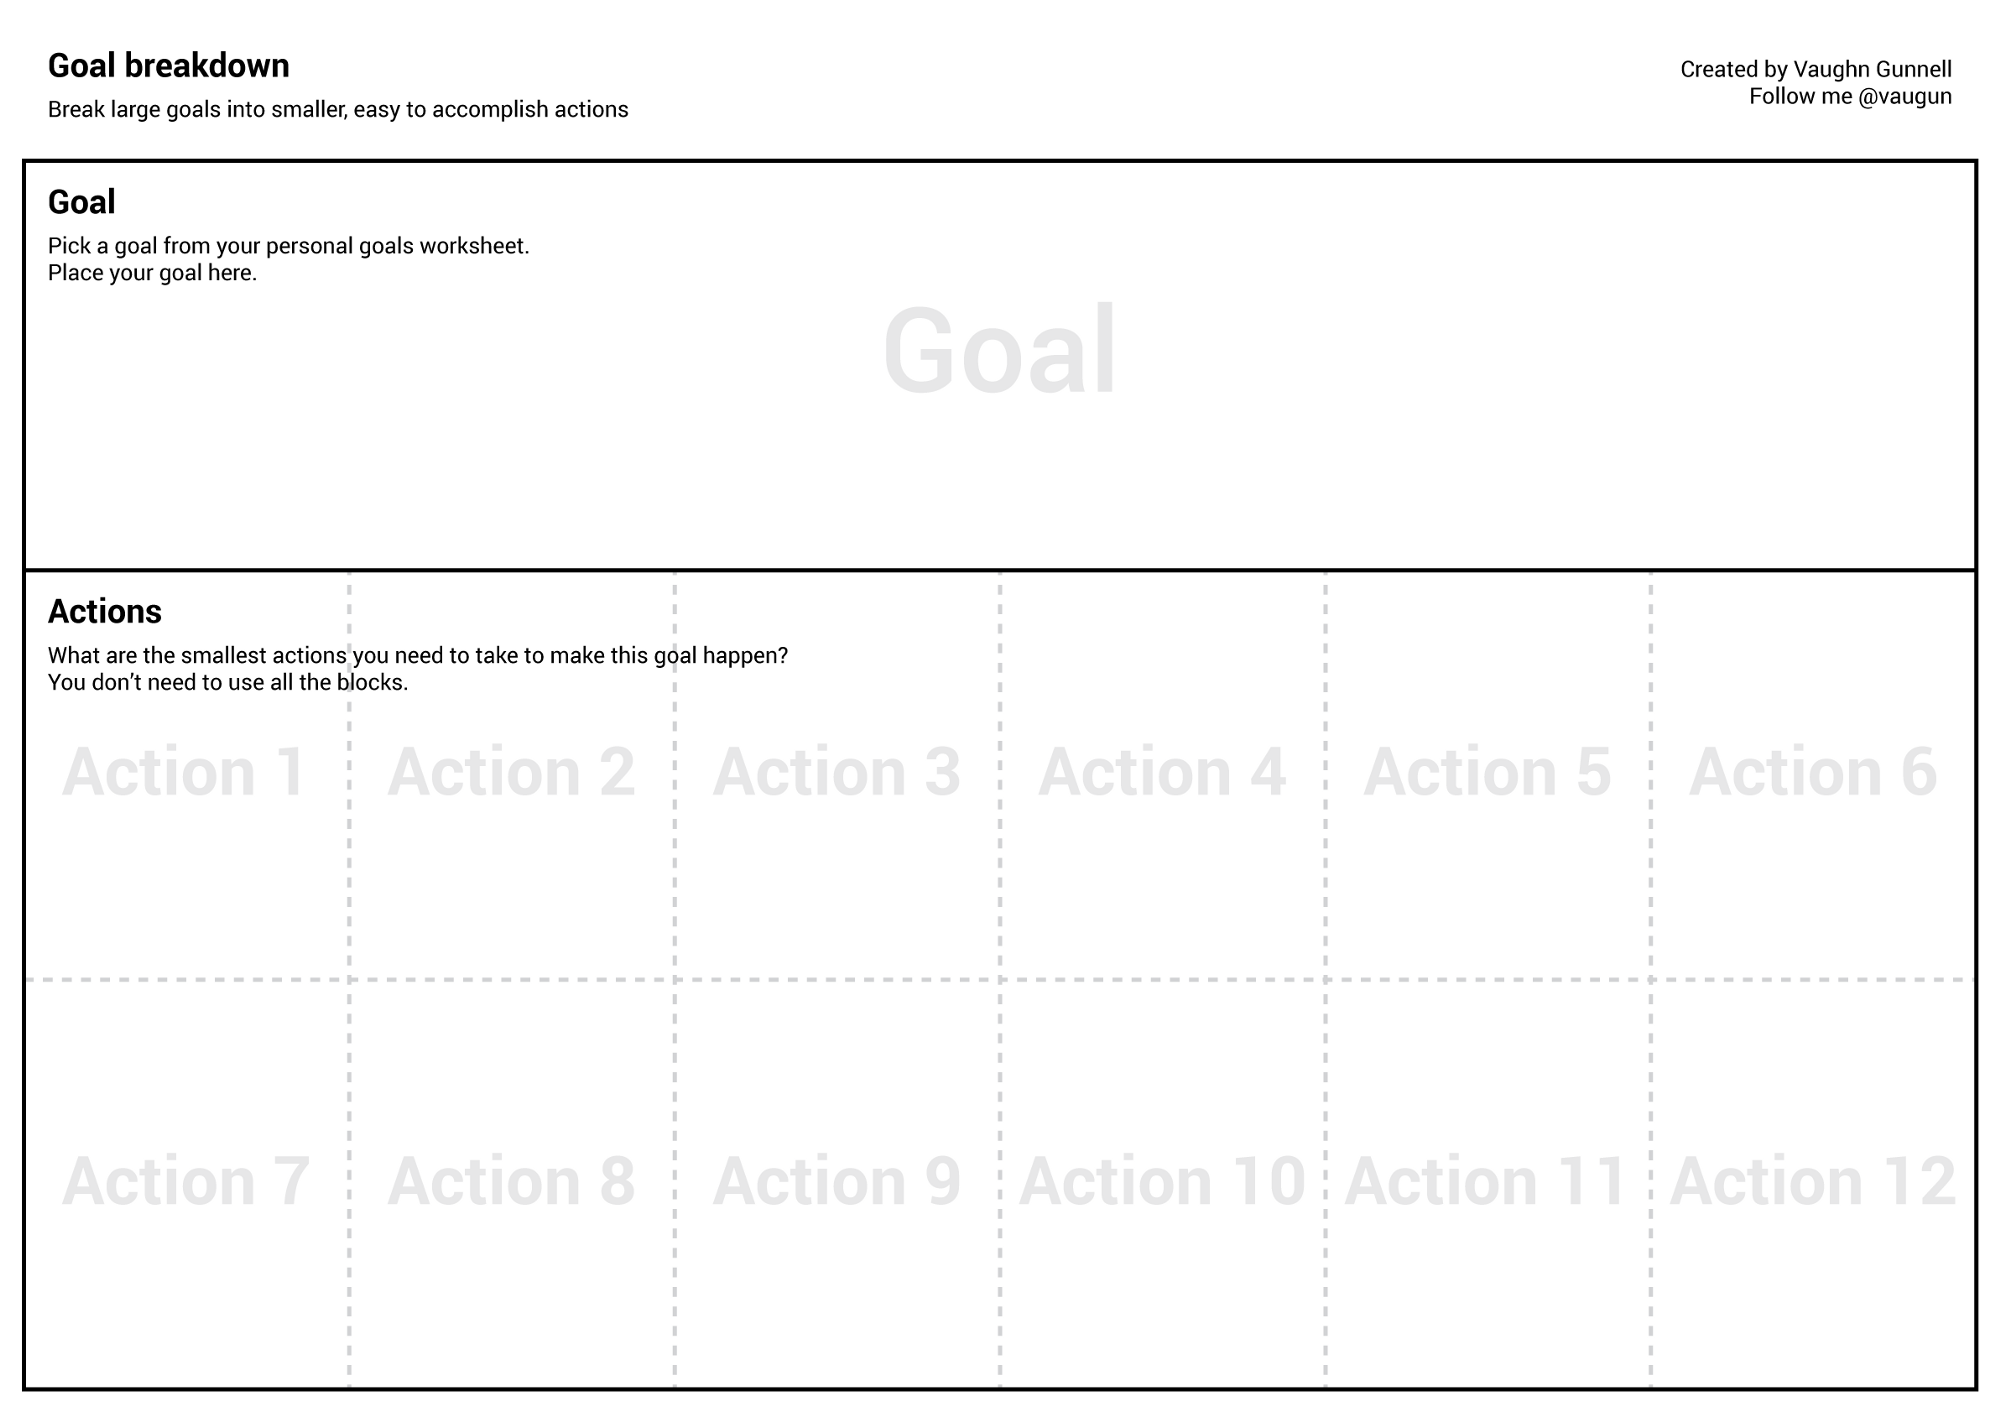 worksheet Jim Rohn Goal Setting Worksheet how to turn your dreams into actions vaughn gunnell medium click here get the goal breakdown worksheet